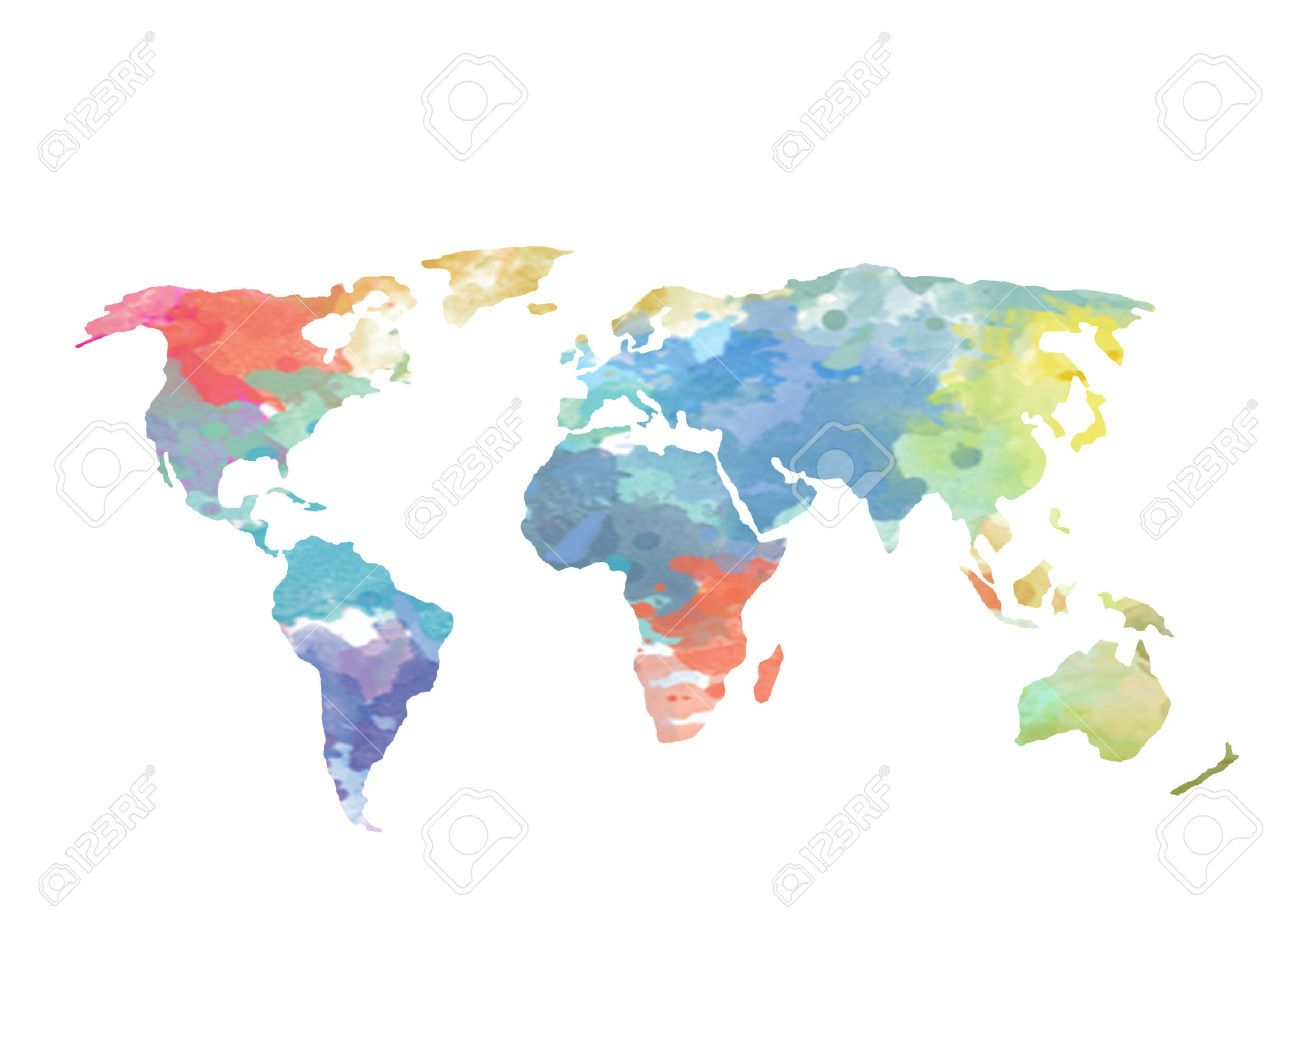 Watercolor world map poster continents ocean stock photo picture watercolor world map poster continents ocean gumiabroncs Gallery